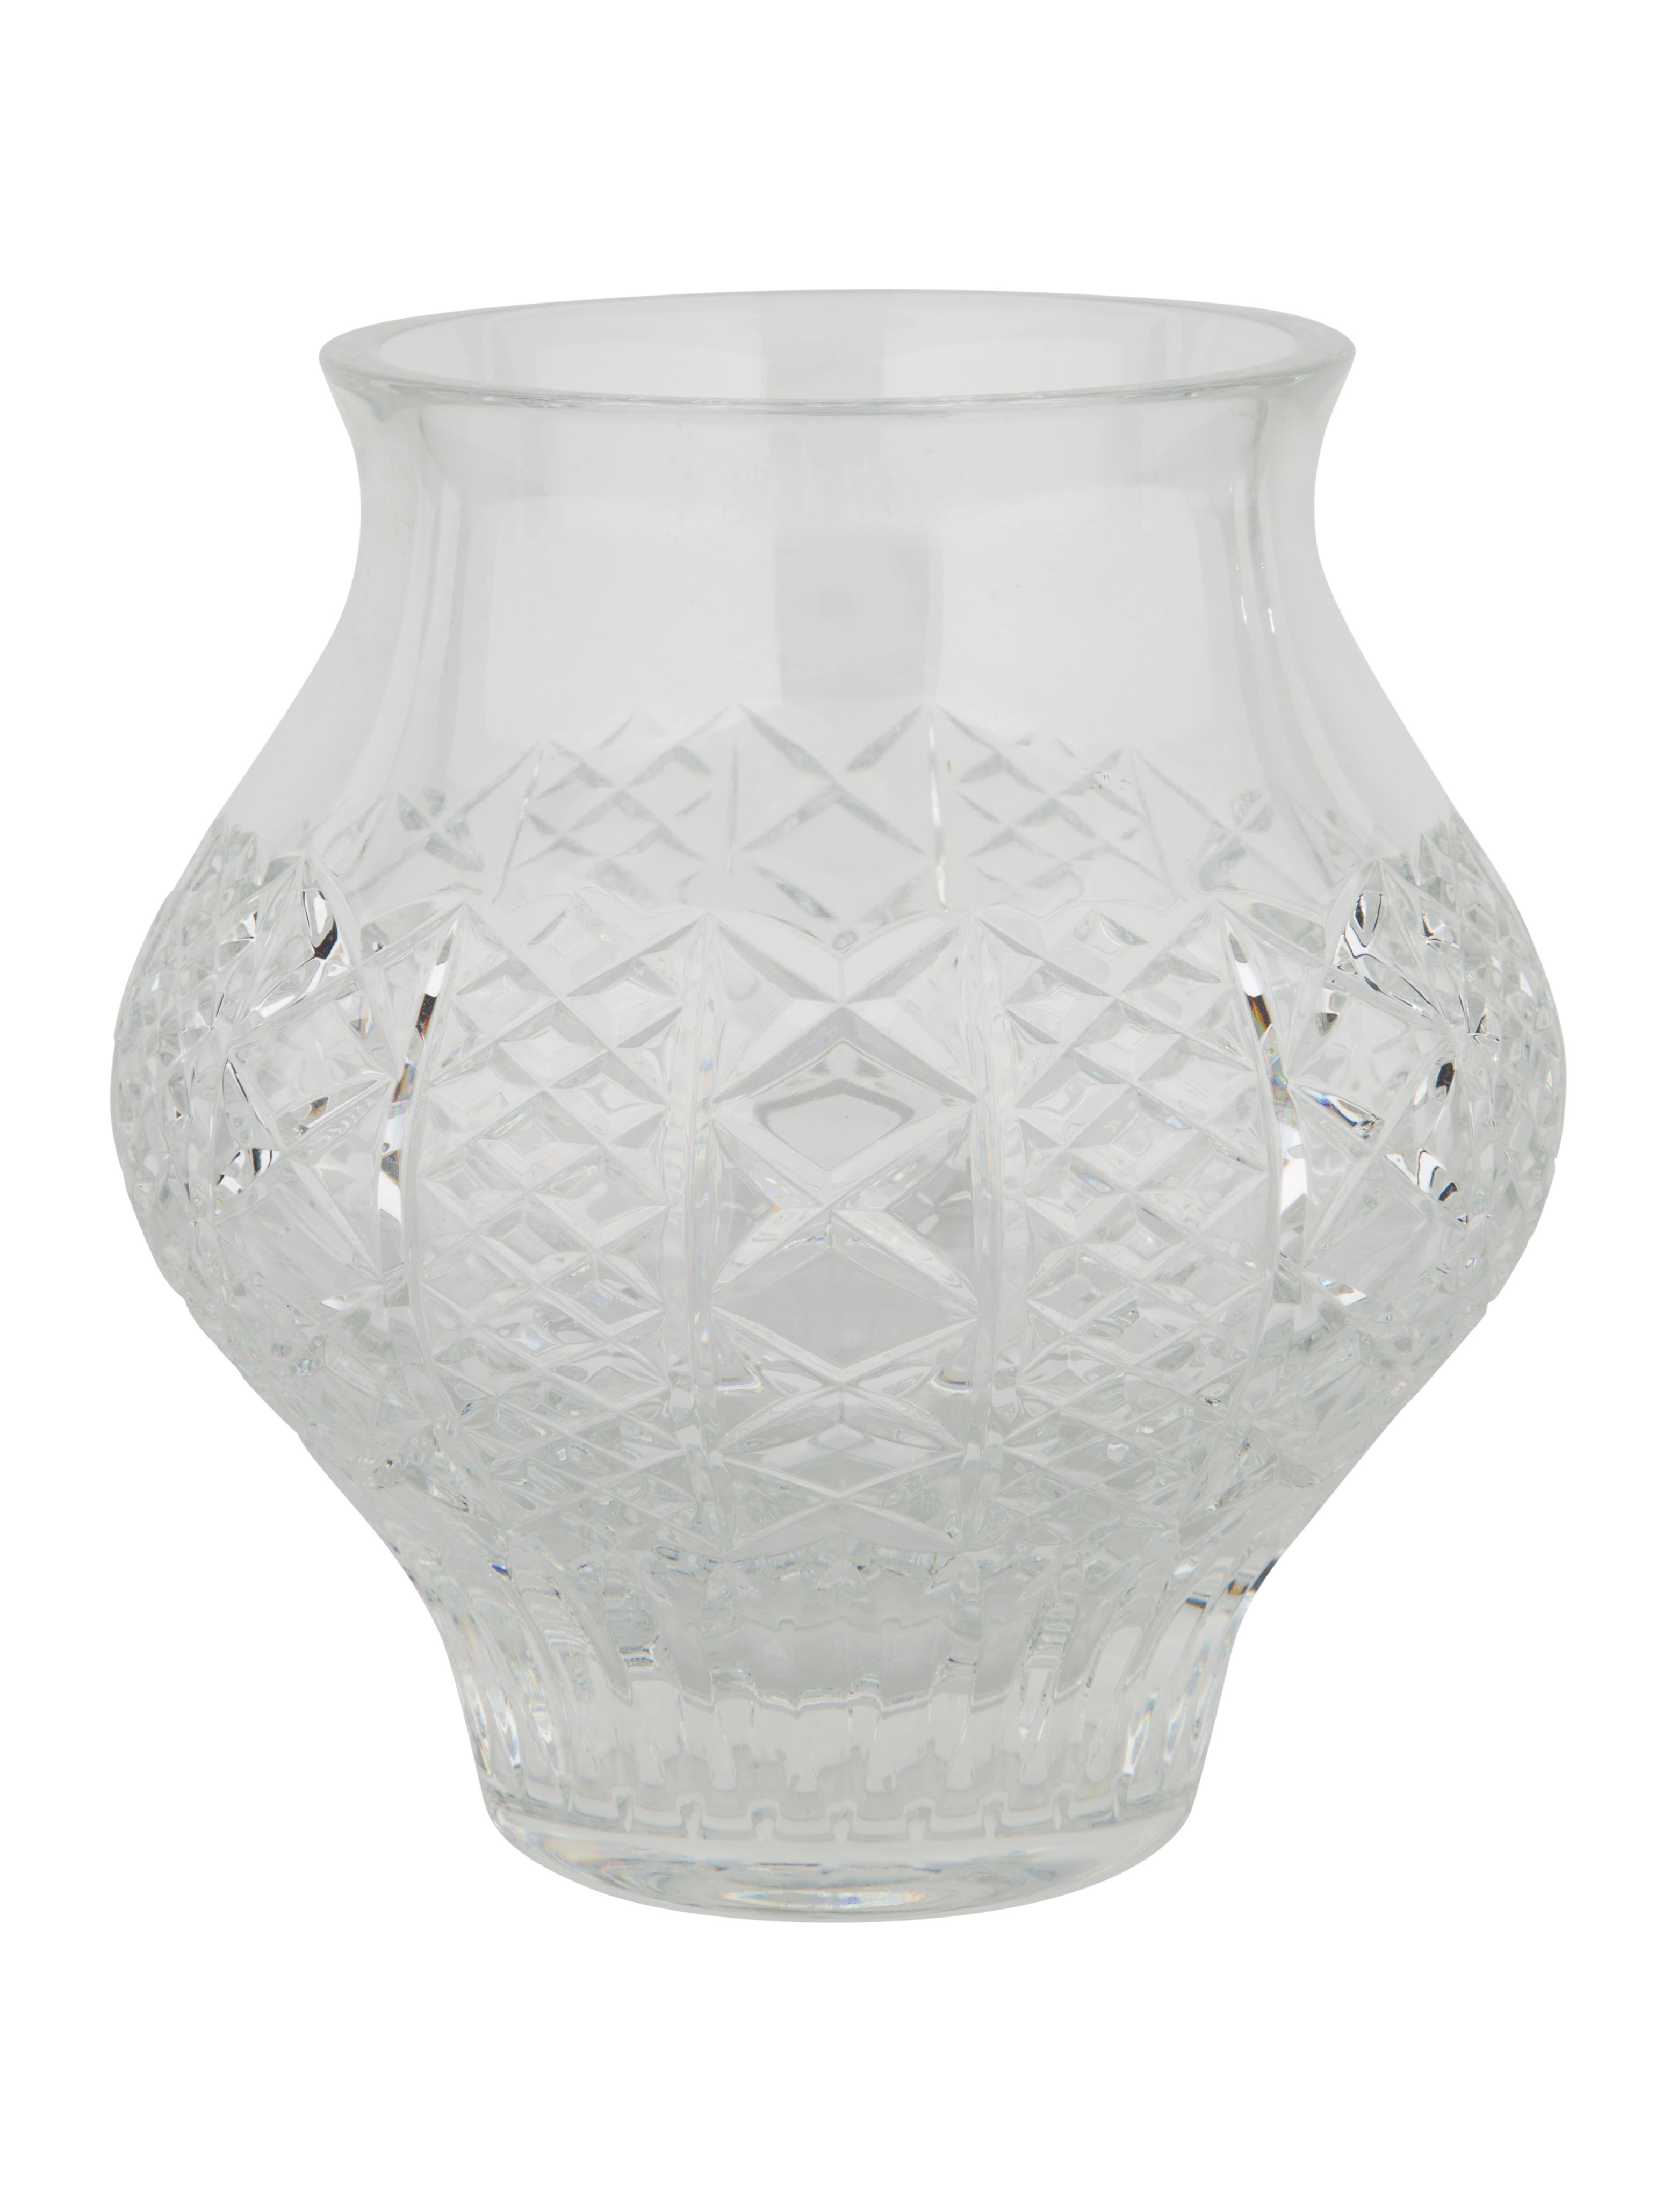 flowers vase on offer white long placed flower crystal nuance black stunning remarkable base ornaments wedding with glass without interior the centerpieces